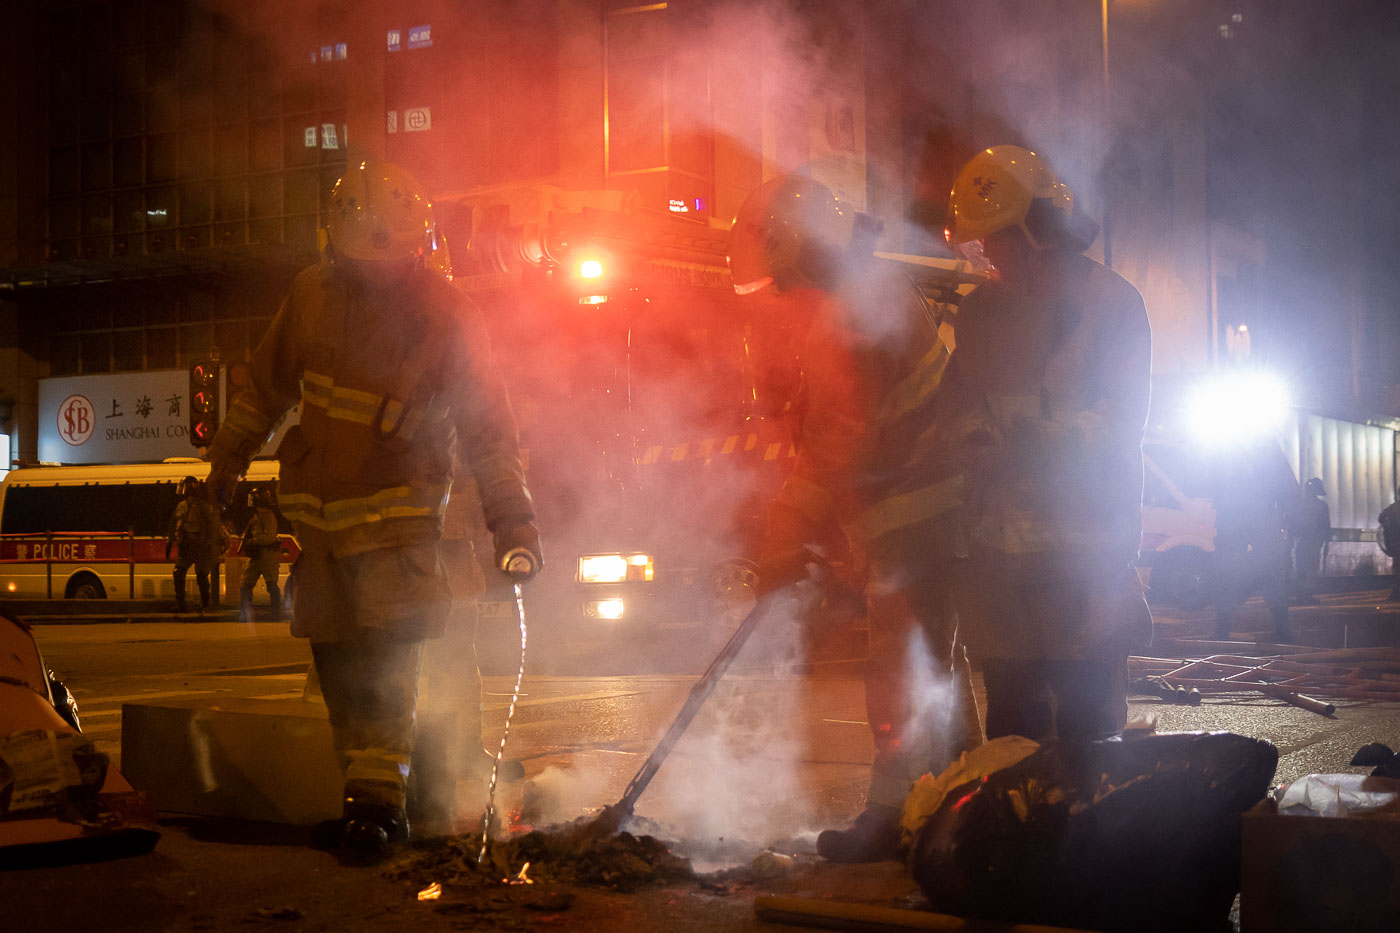 Firefighters douse a small fire in the street set by protesters in Hong Kong.